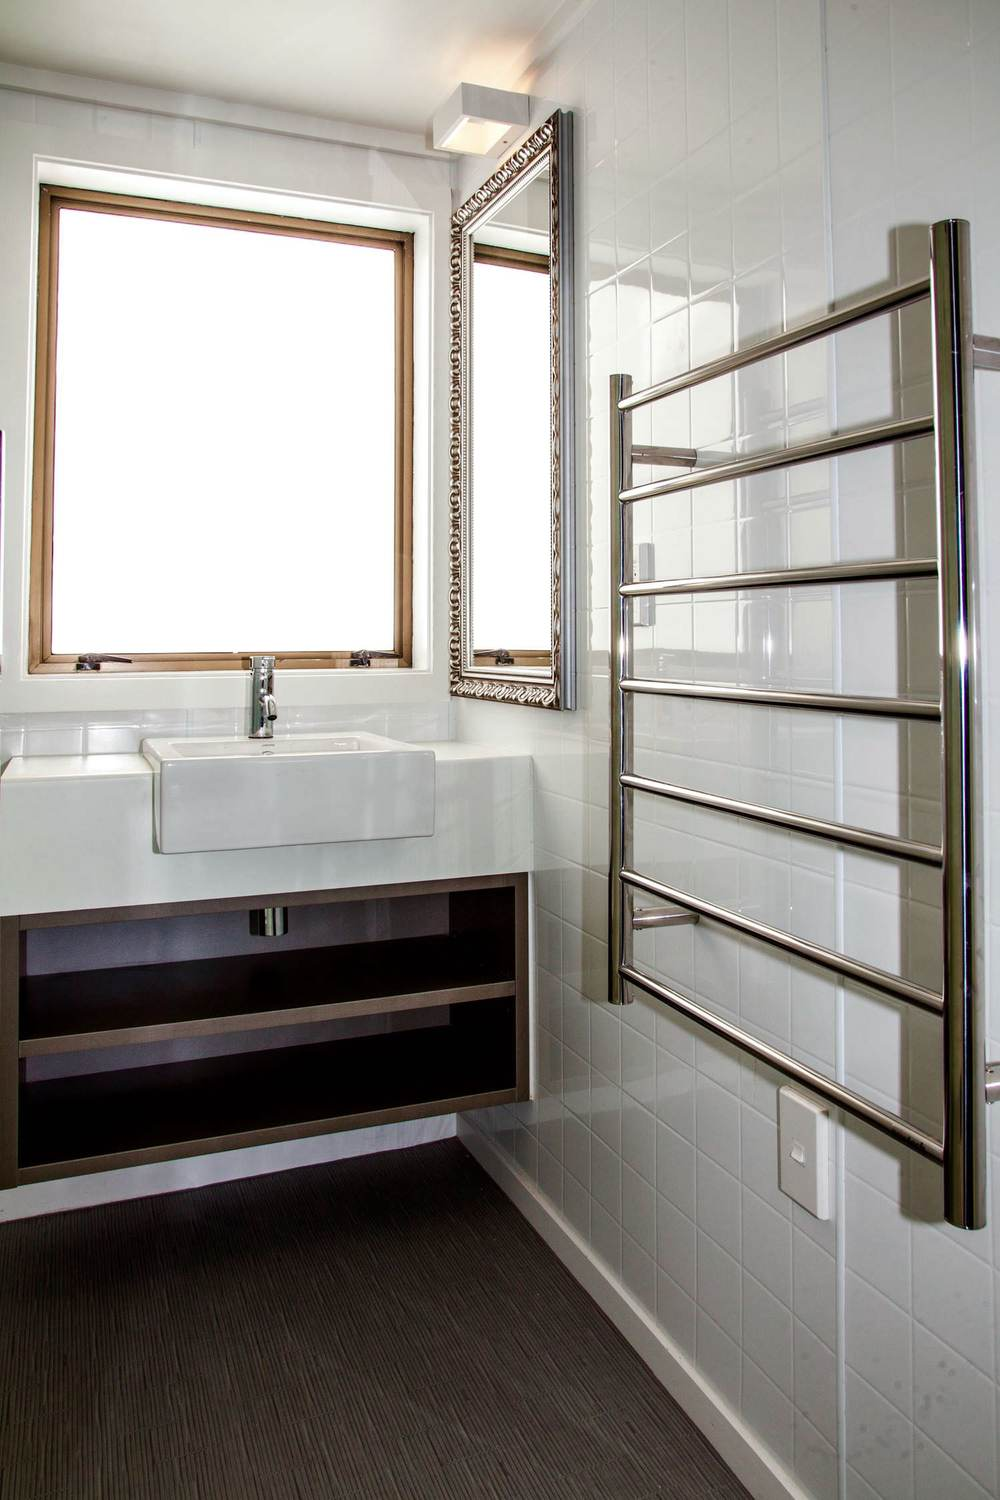 mezzanine - king bathroom